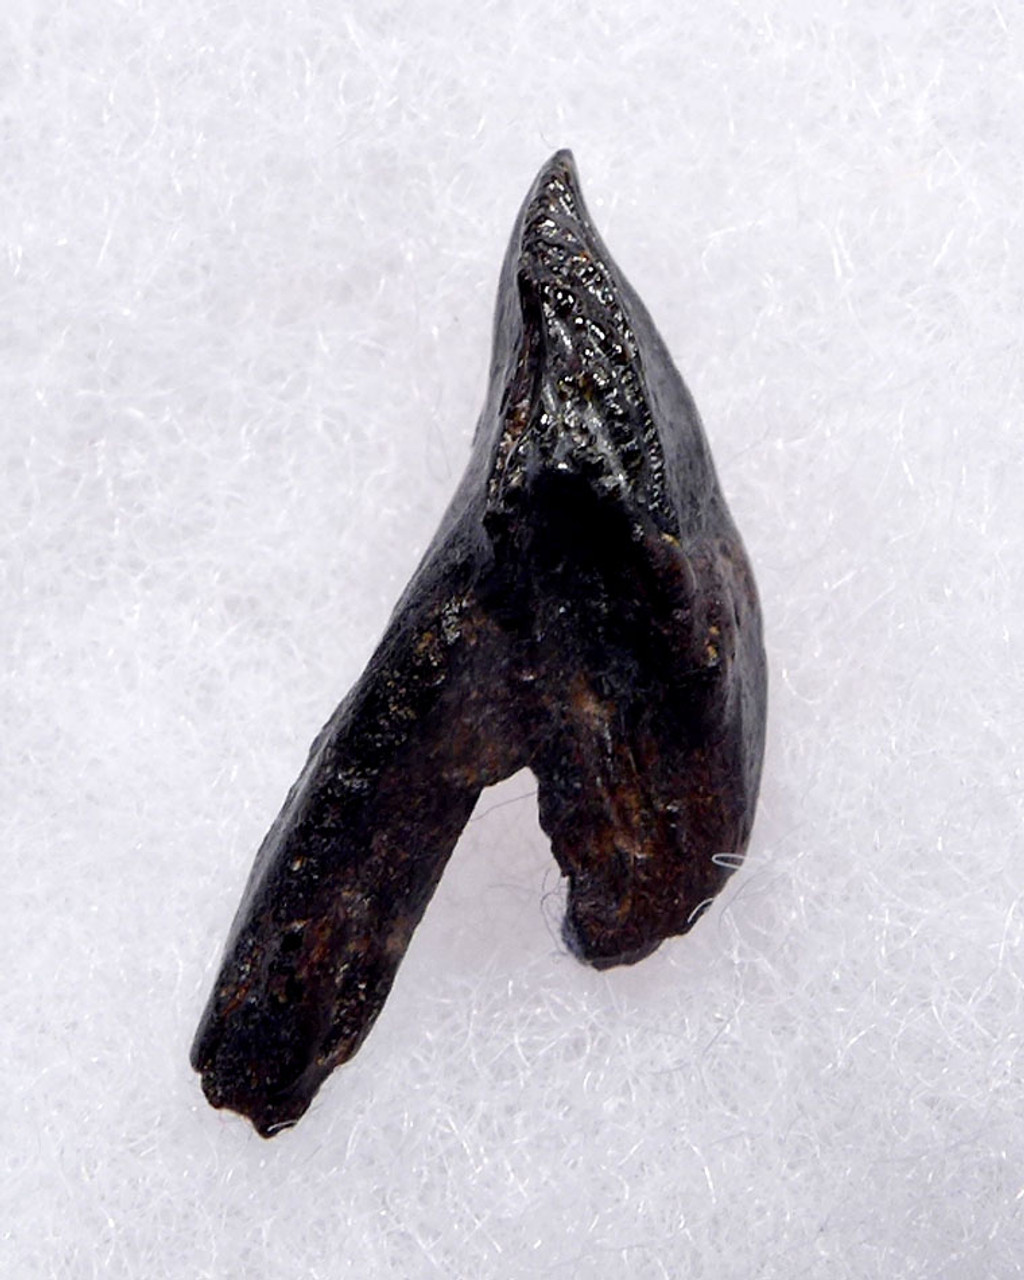 FINEST BABY TRICERATOPS DINOSAUR TOOTH WITH UNWORN CROWN AND FORKED ROOT  *DT19-049X